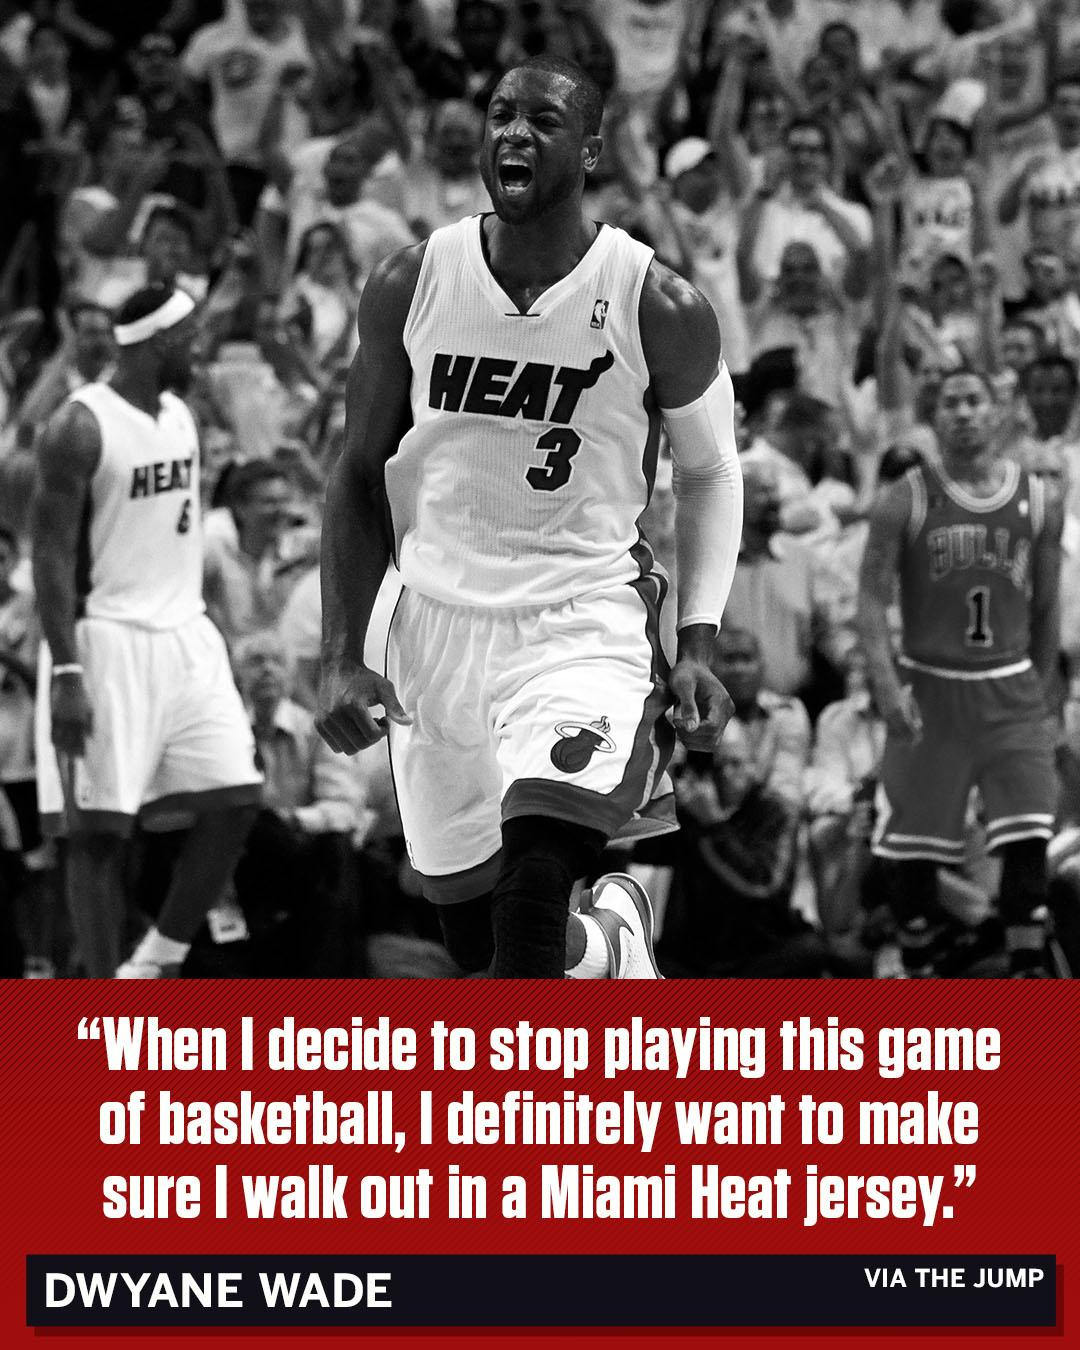 D-Wade wants to go out in the same jersey he started in. https://t.co/1DPHYSKcwx